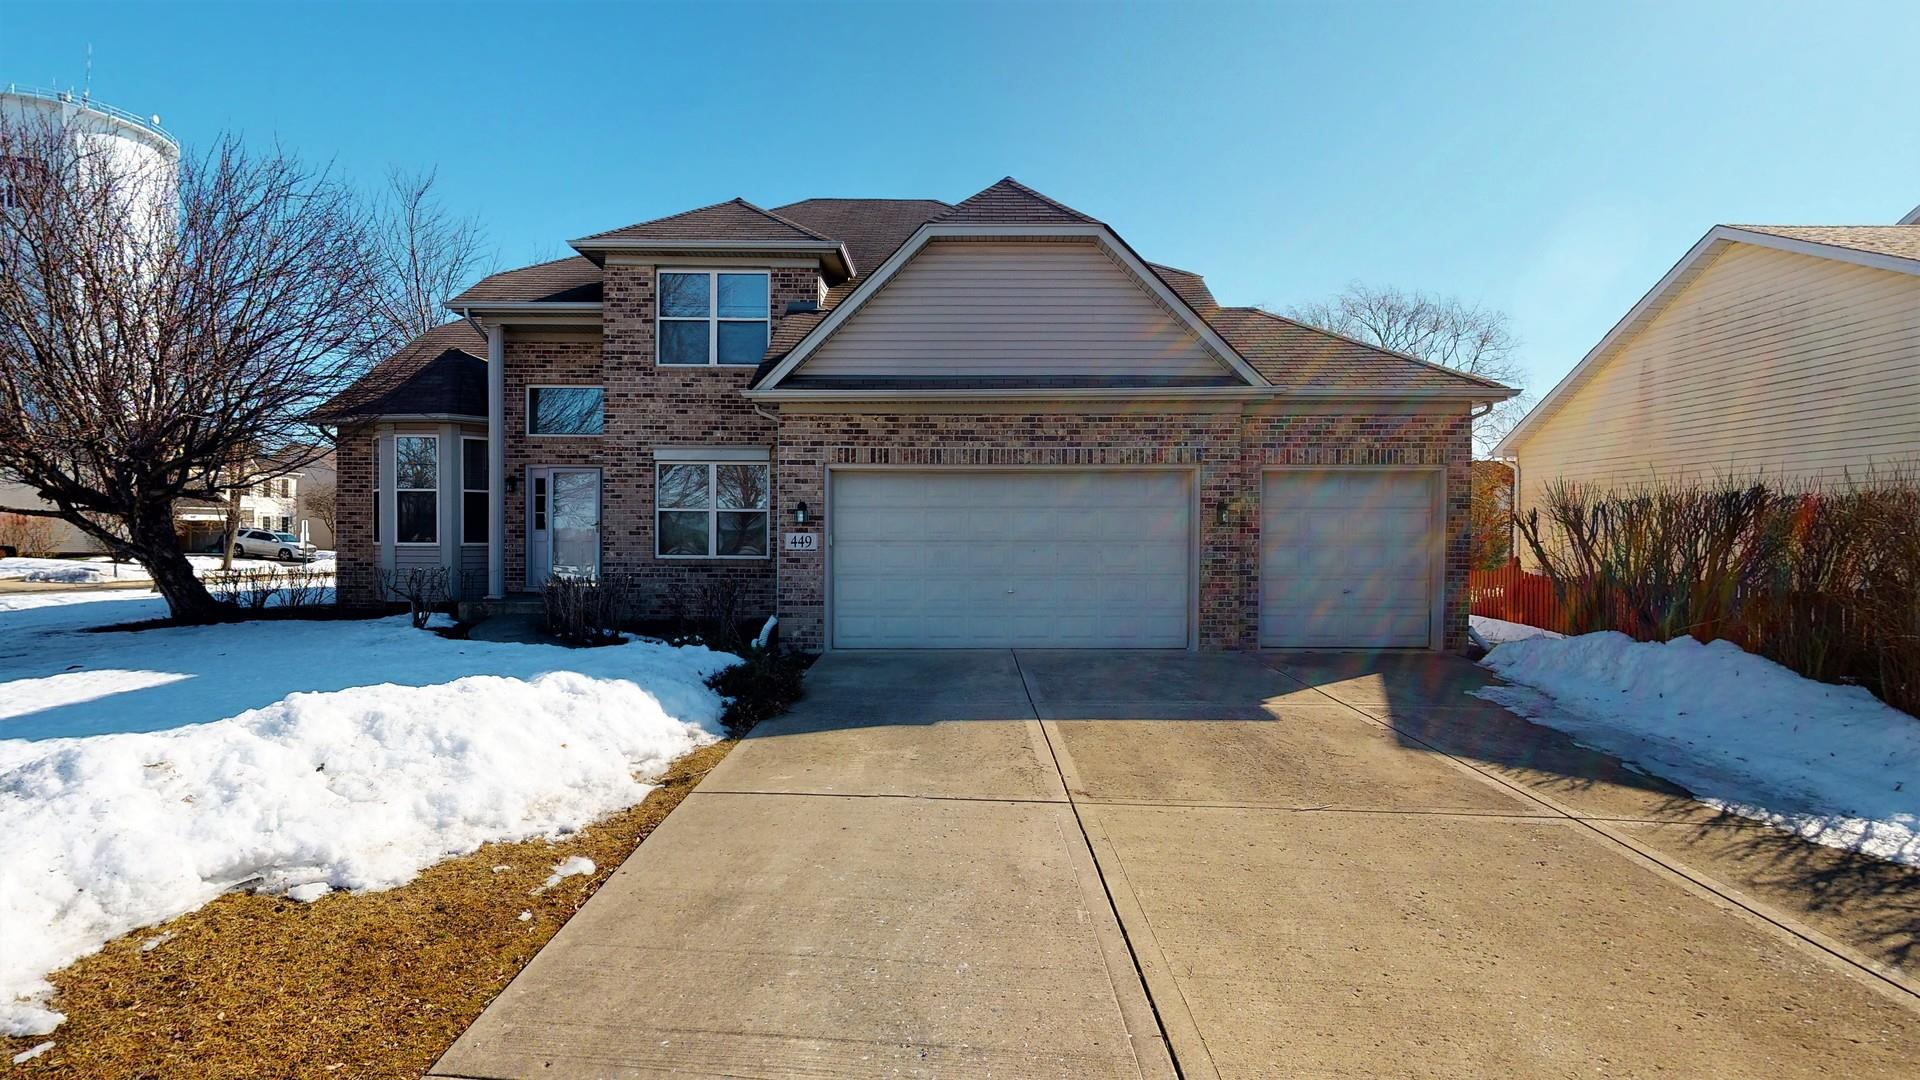 449 Parkwood Circle, South Elgin, IL 60177 - #: 11009124